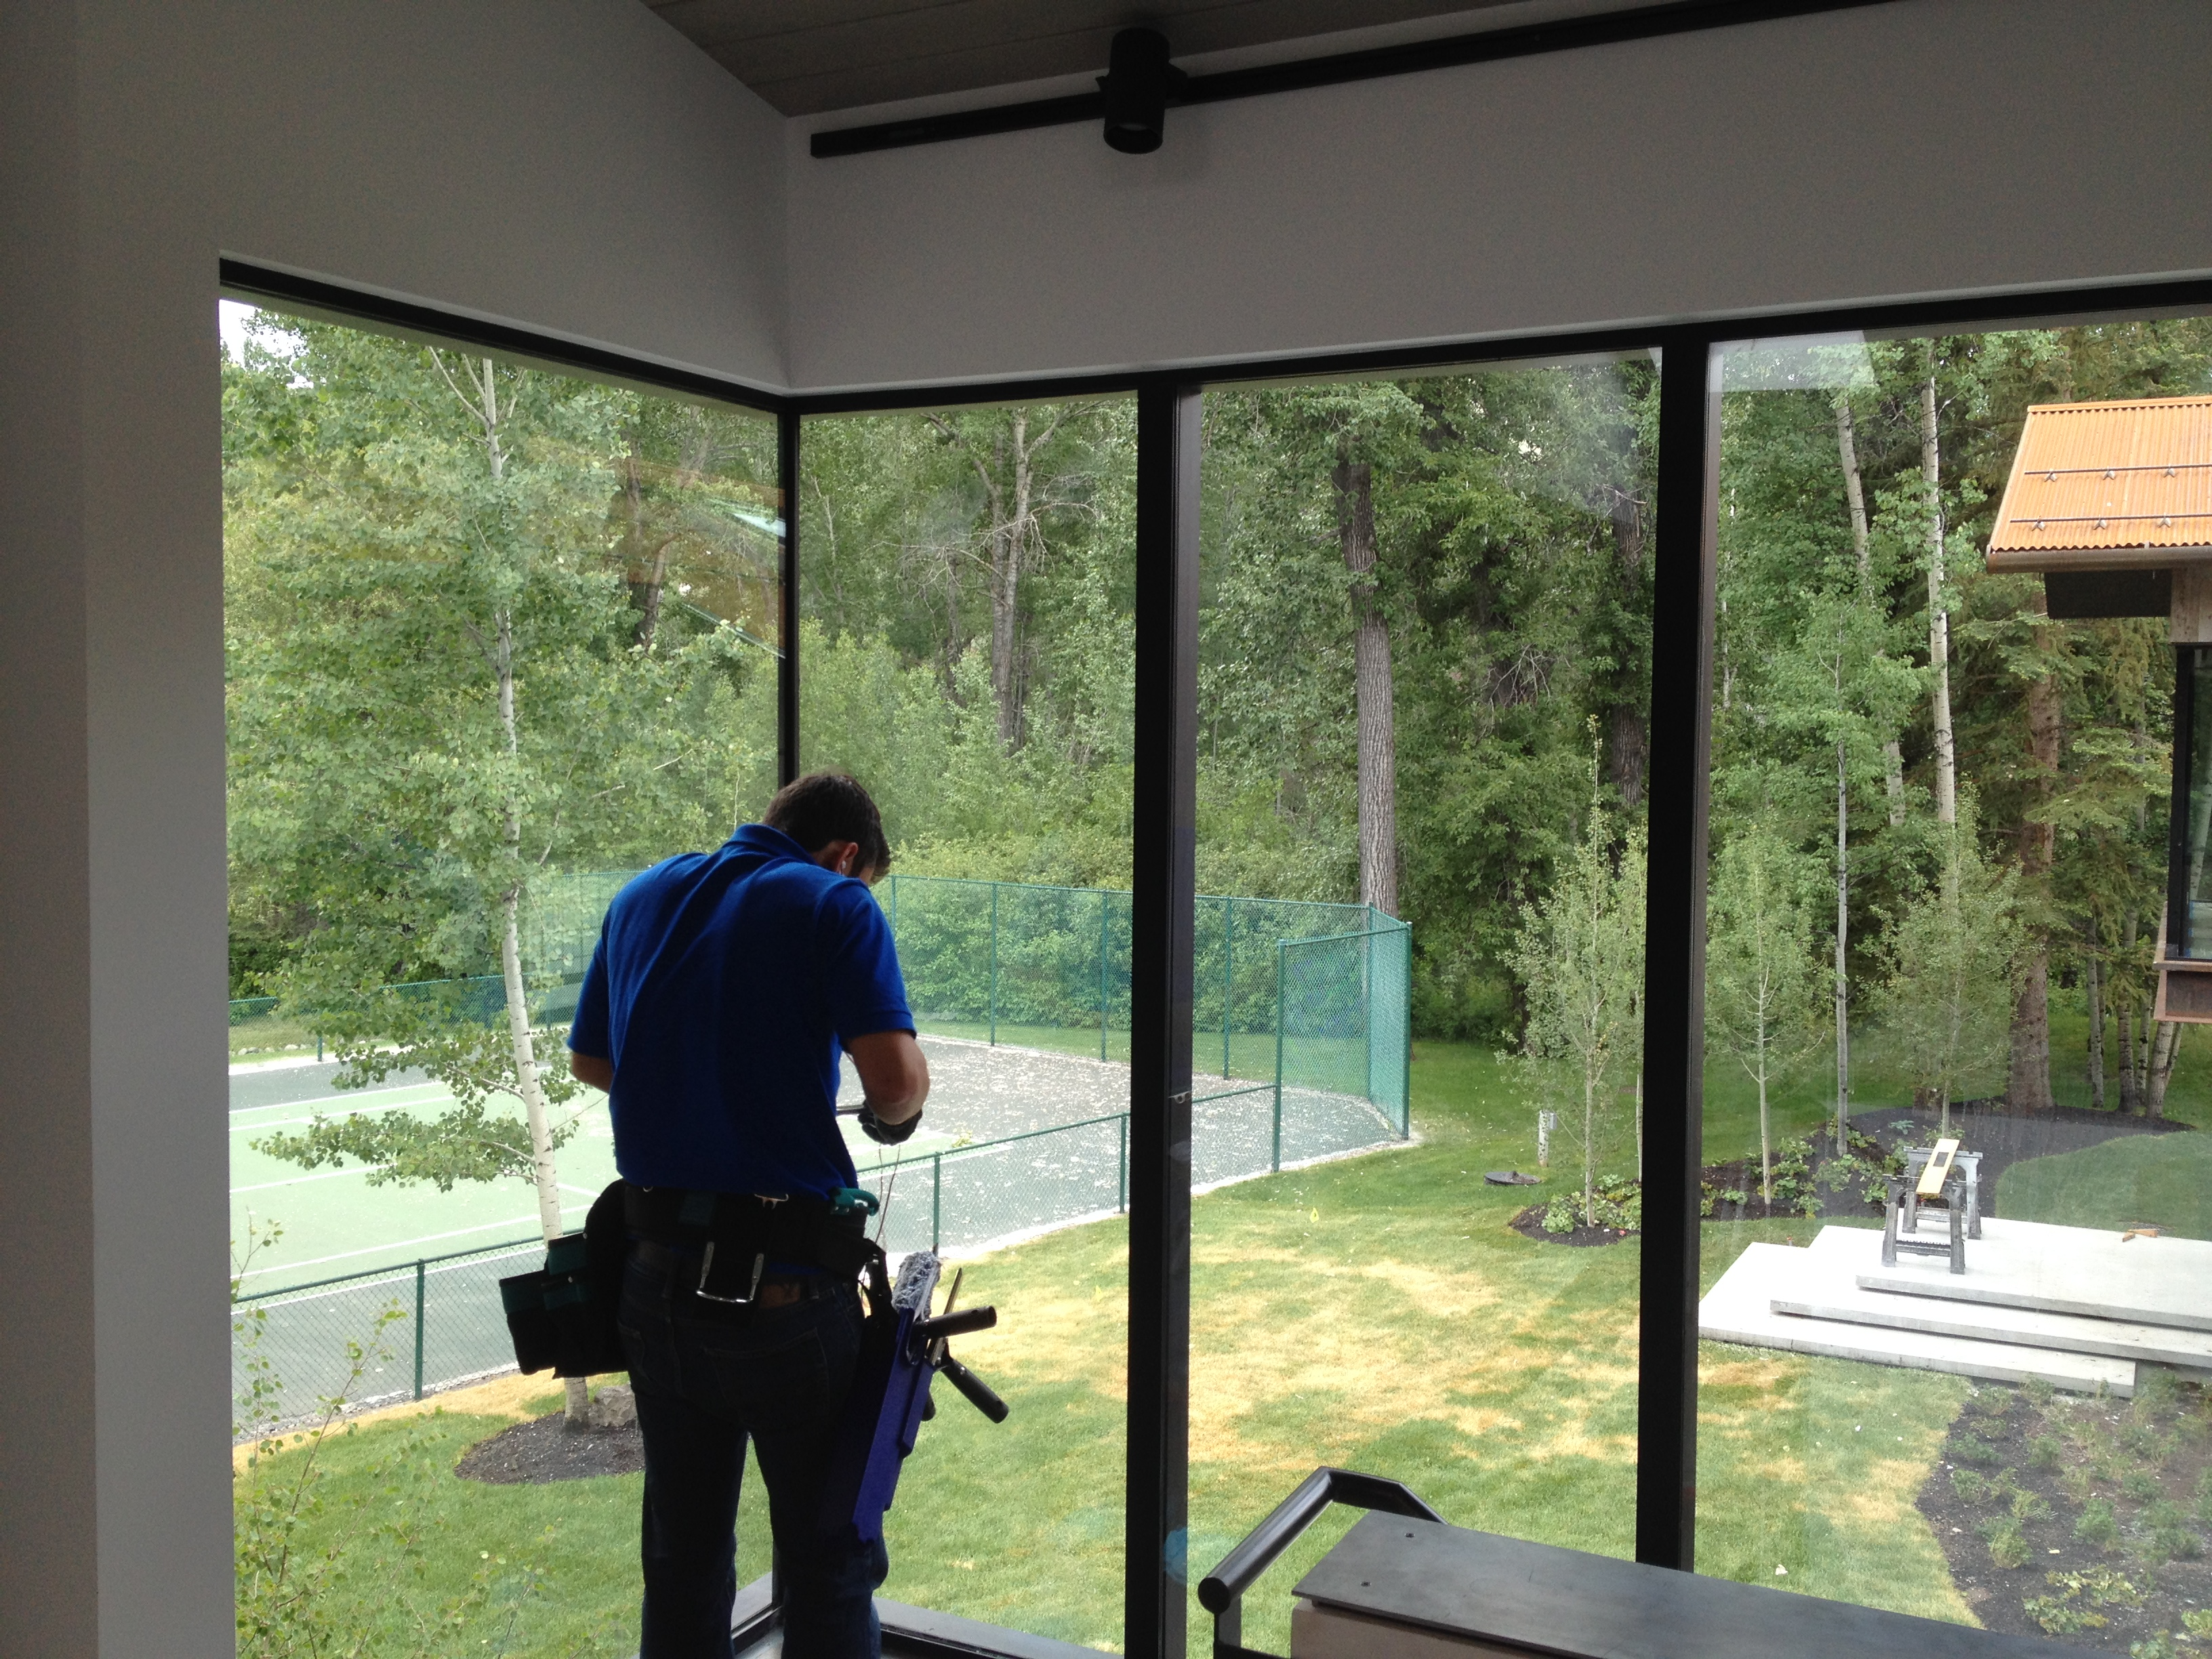 ketchum window cleaning - detailing